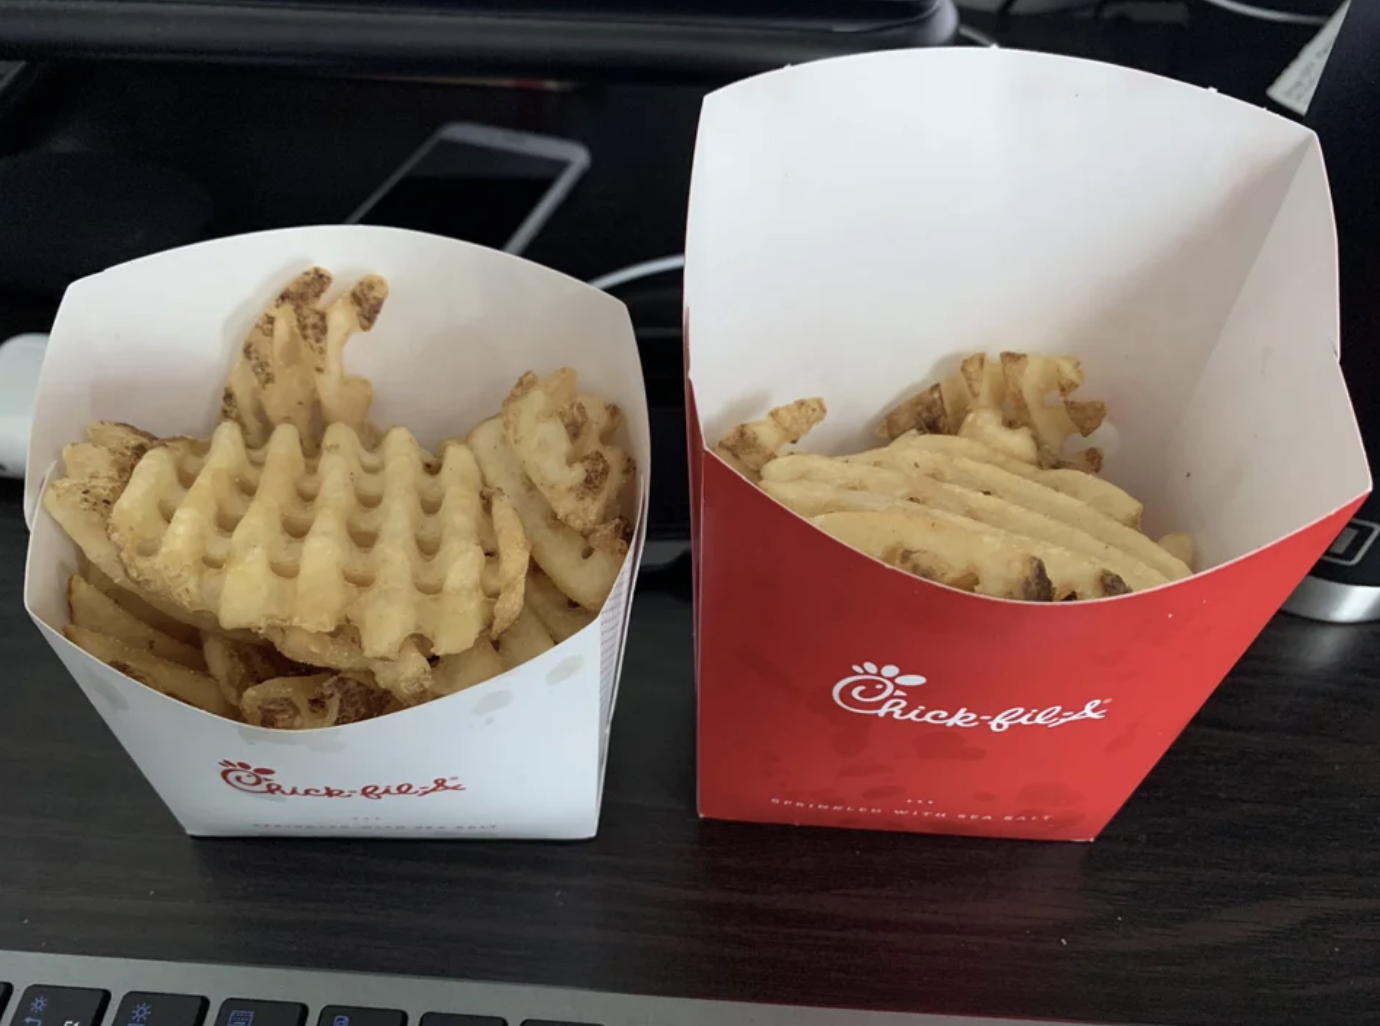 A small fry with more fries in it than the large fry next to it. They're from Chick-fil-A